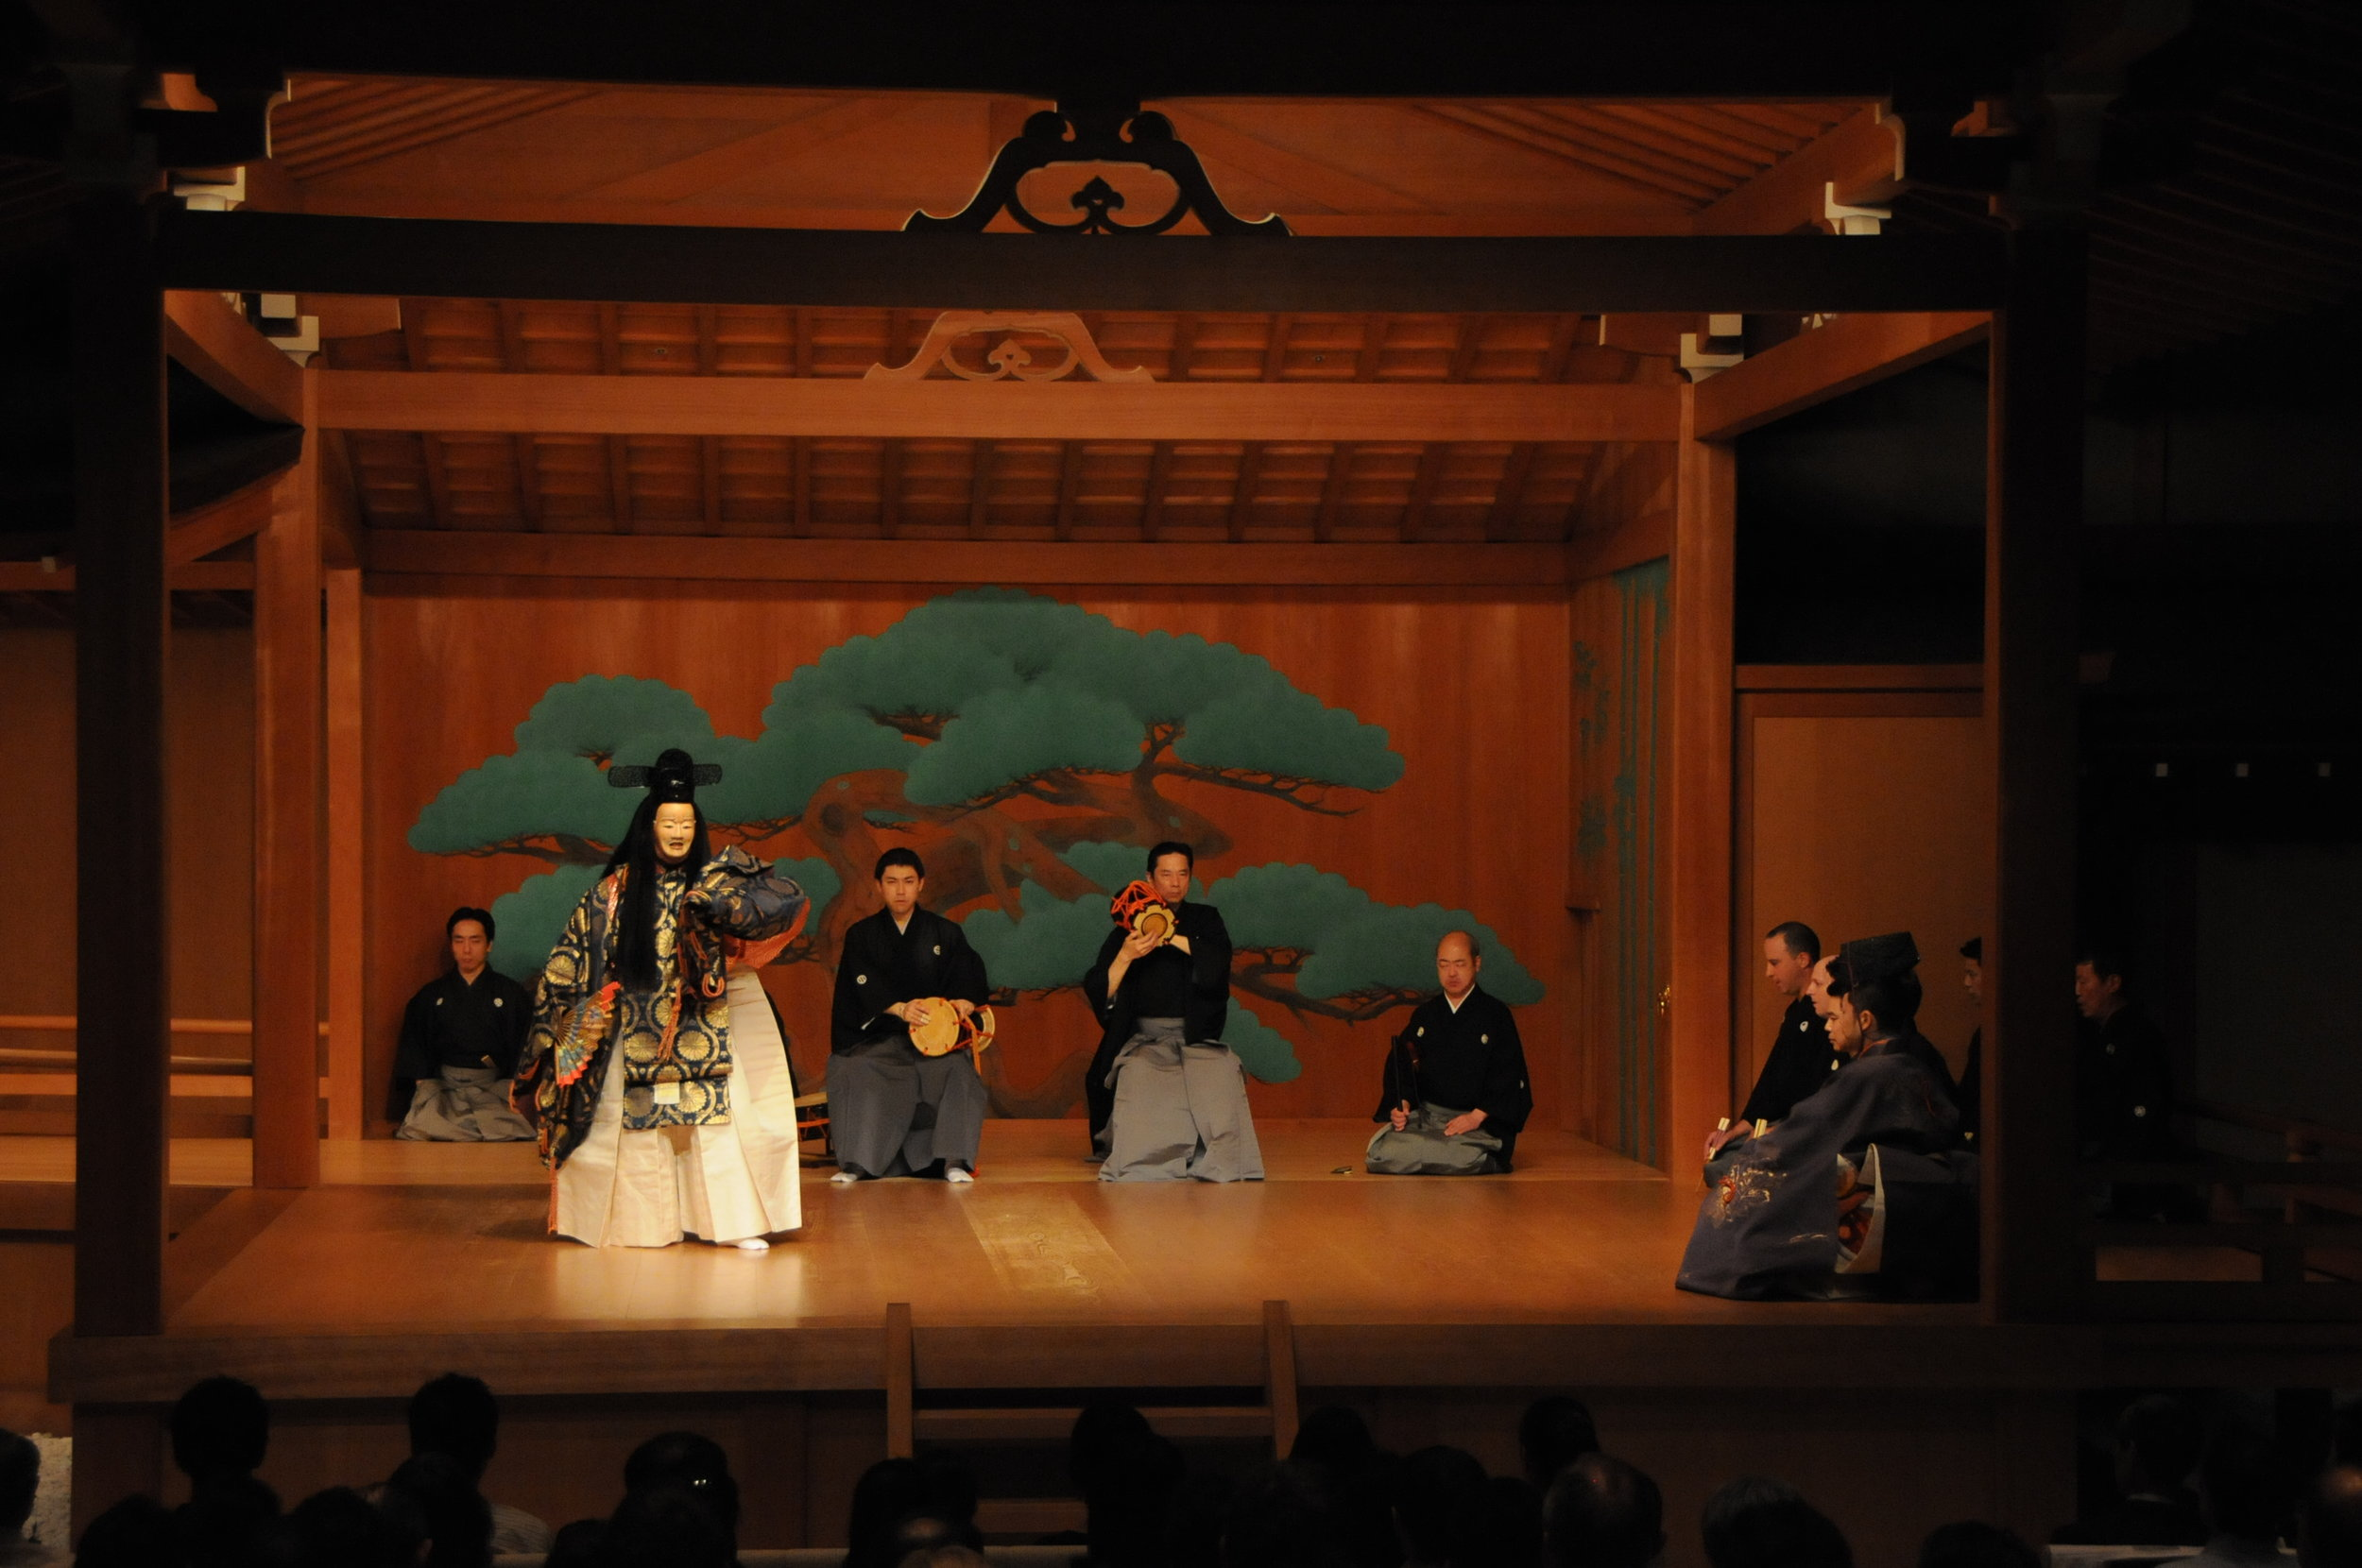 Takasago performed at the National Noh Theatre. Photography by Sohta Kitazawa